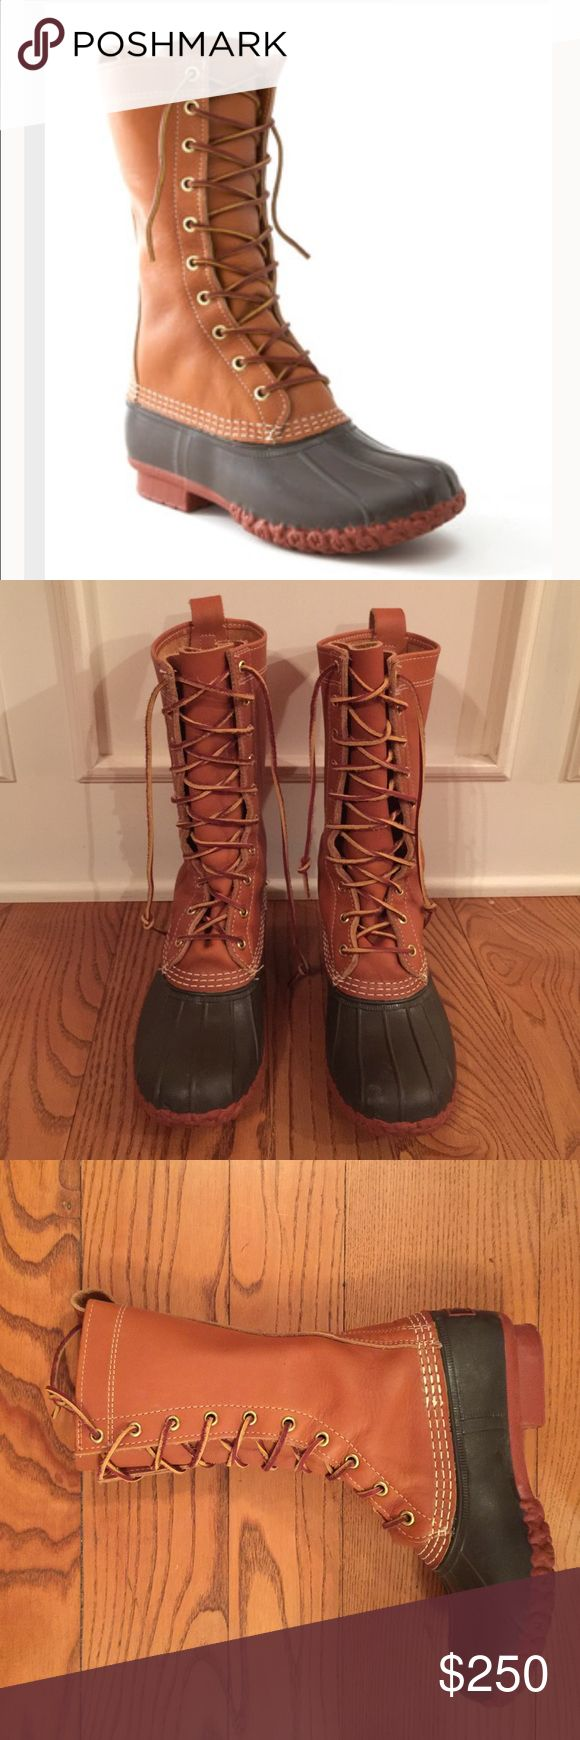 Selling this LL Bean 100th Anniversary Maine Hunting Boots RARE on Poshmark! My username is: camicargraham. #shopmycloset #poshmark #fashion #shopping #style #forsale #LL Bean #Shoes